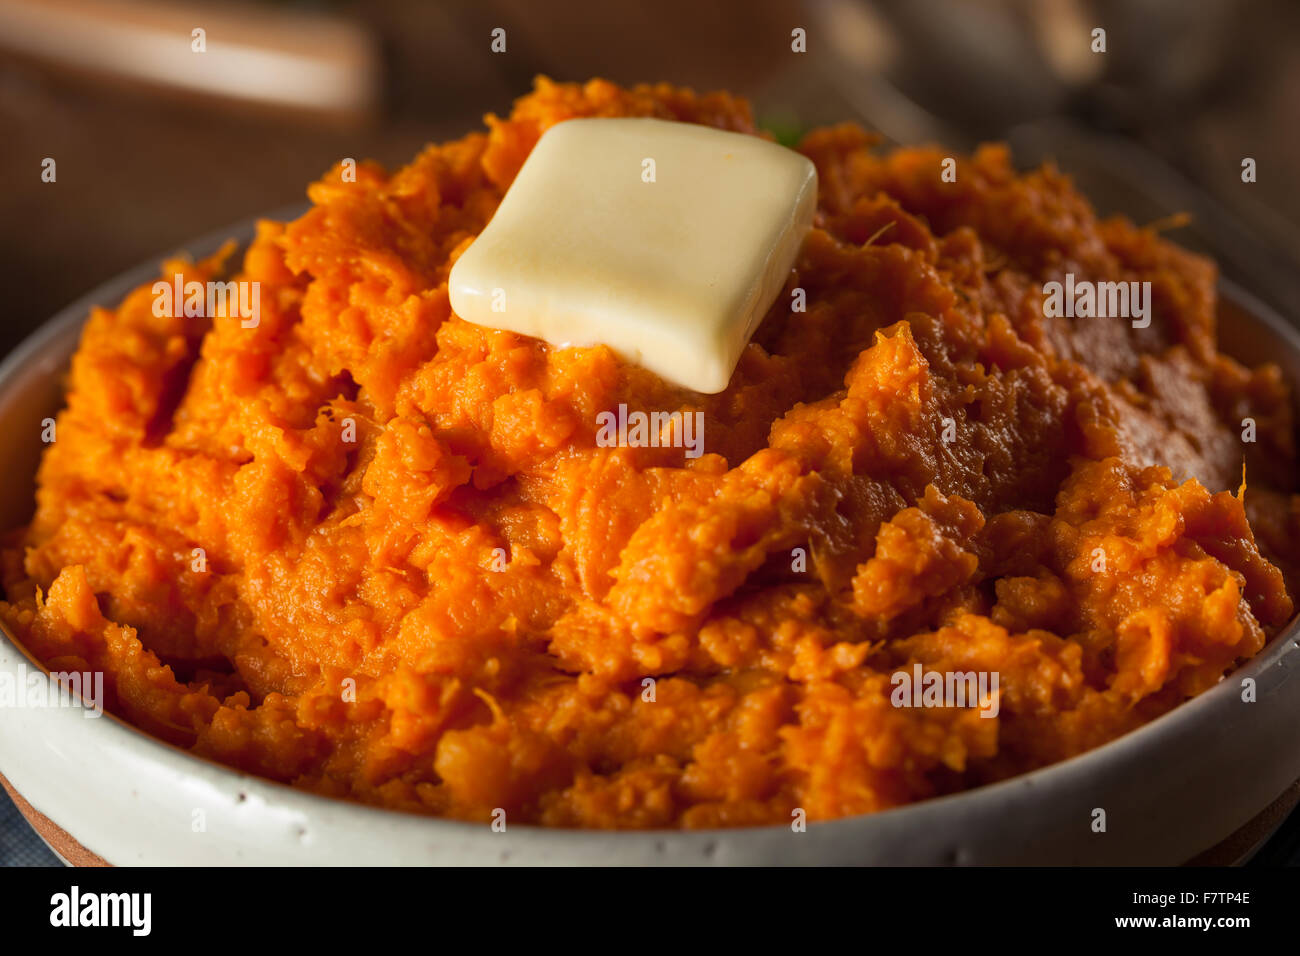 Organic Homemade Mashed Sweet Potatoes with Butter Stock Photo